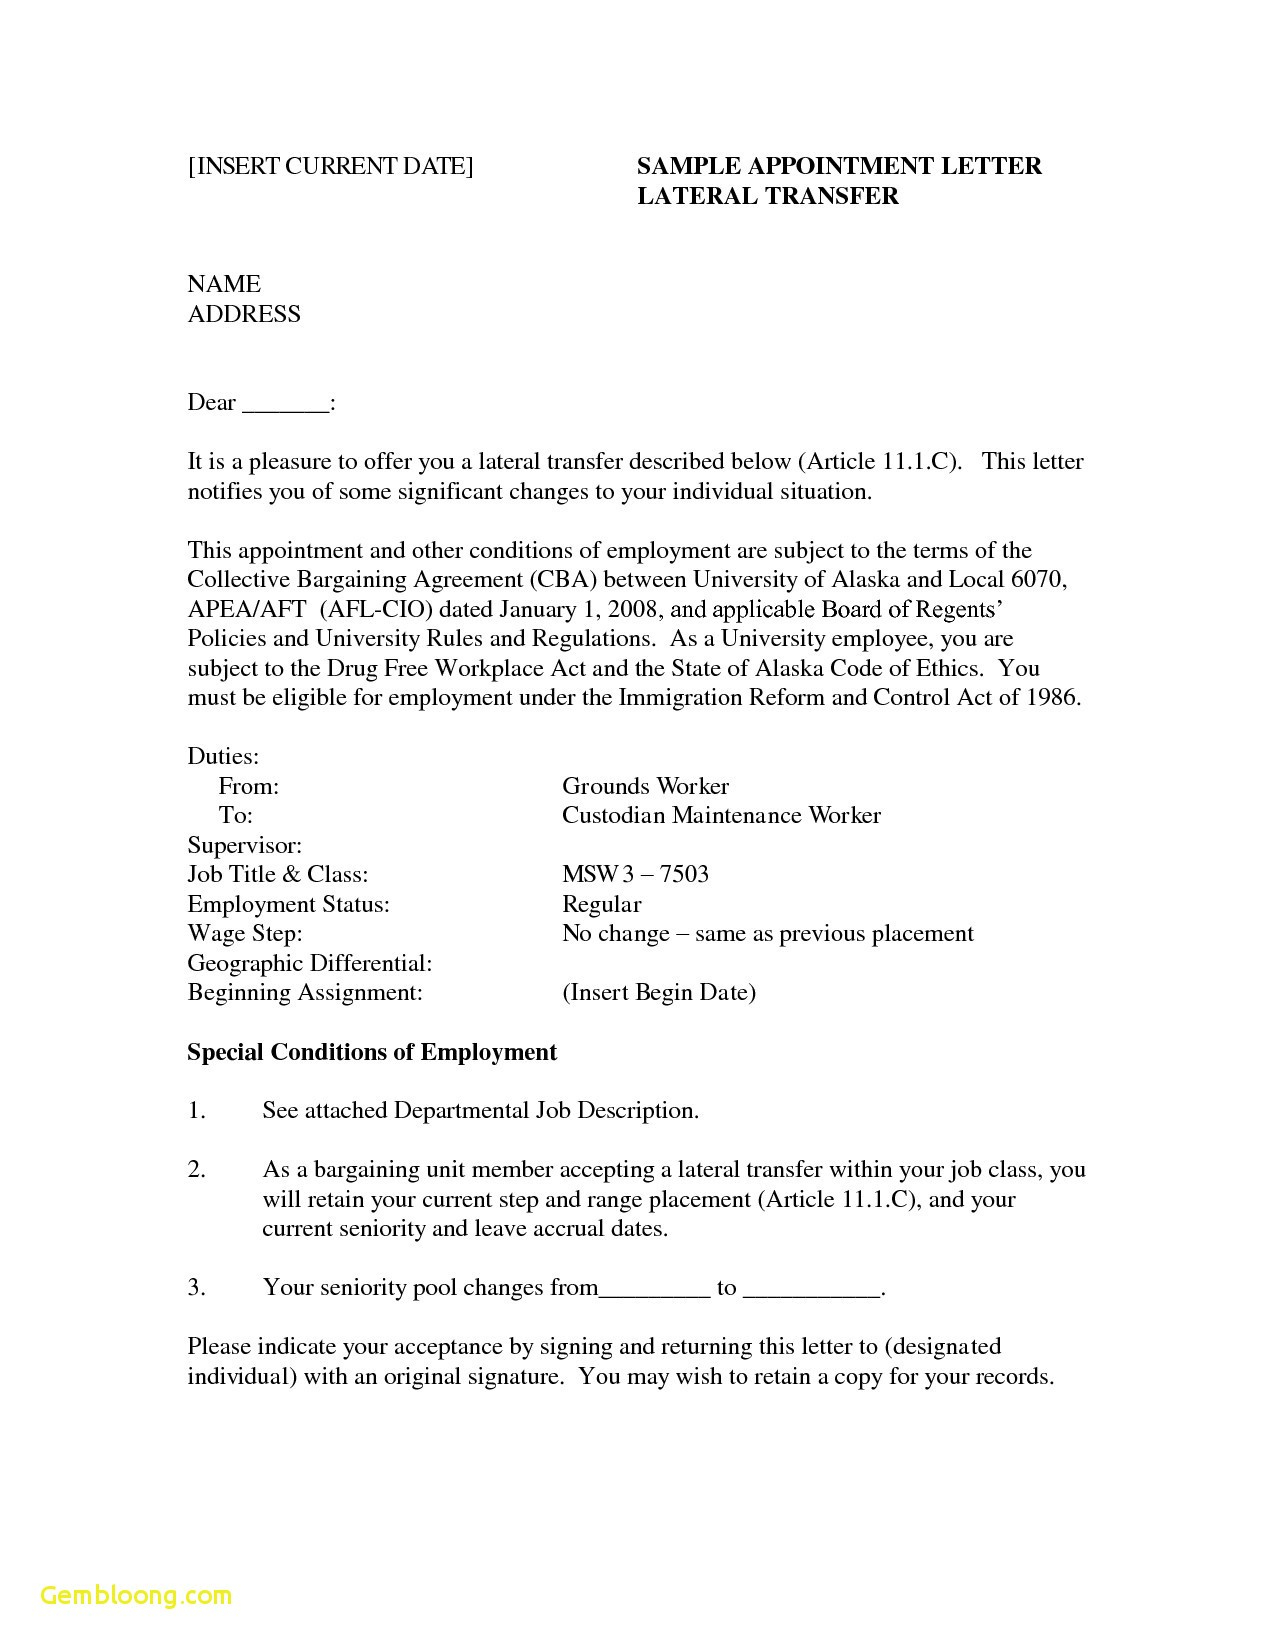 Employee Relocation Letter Template